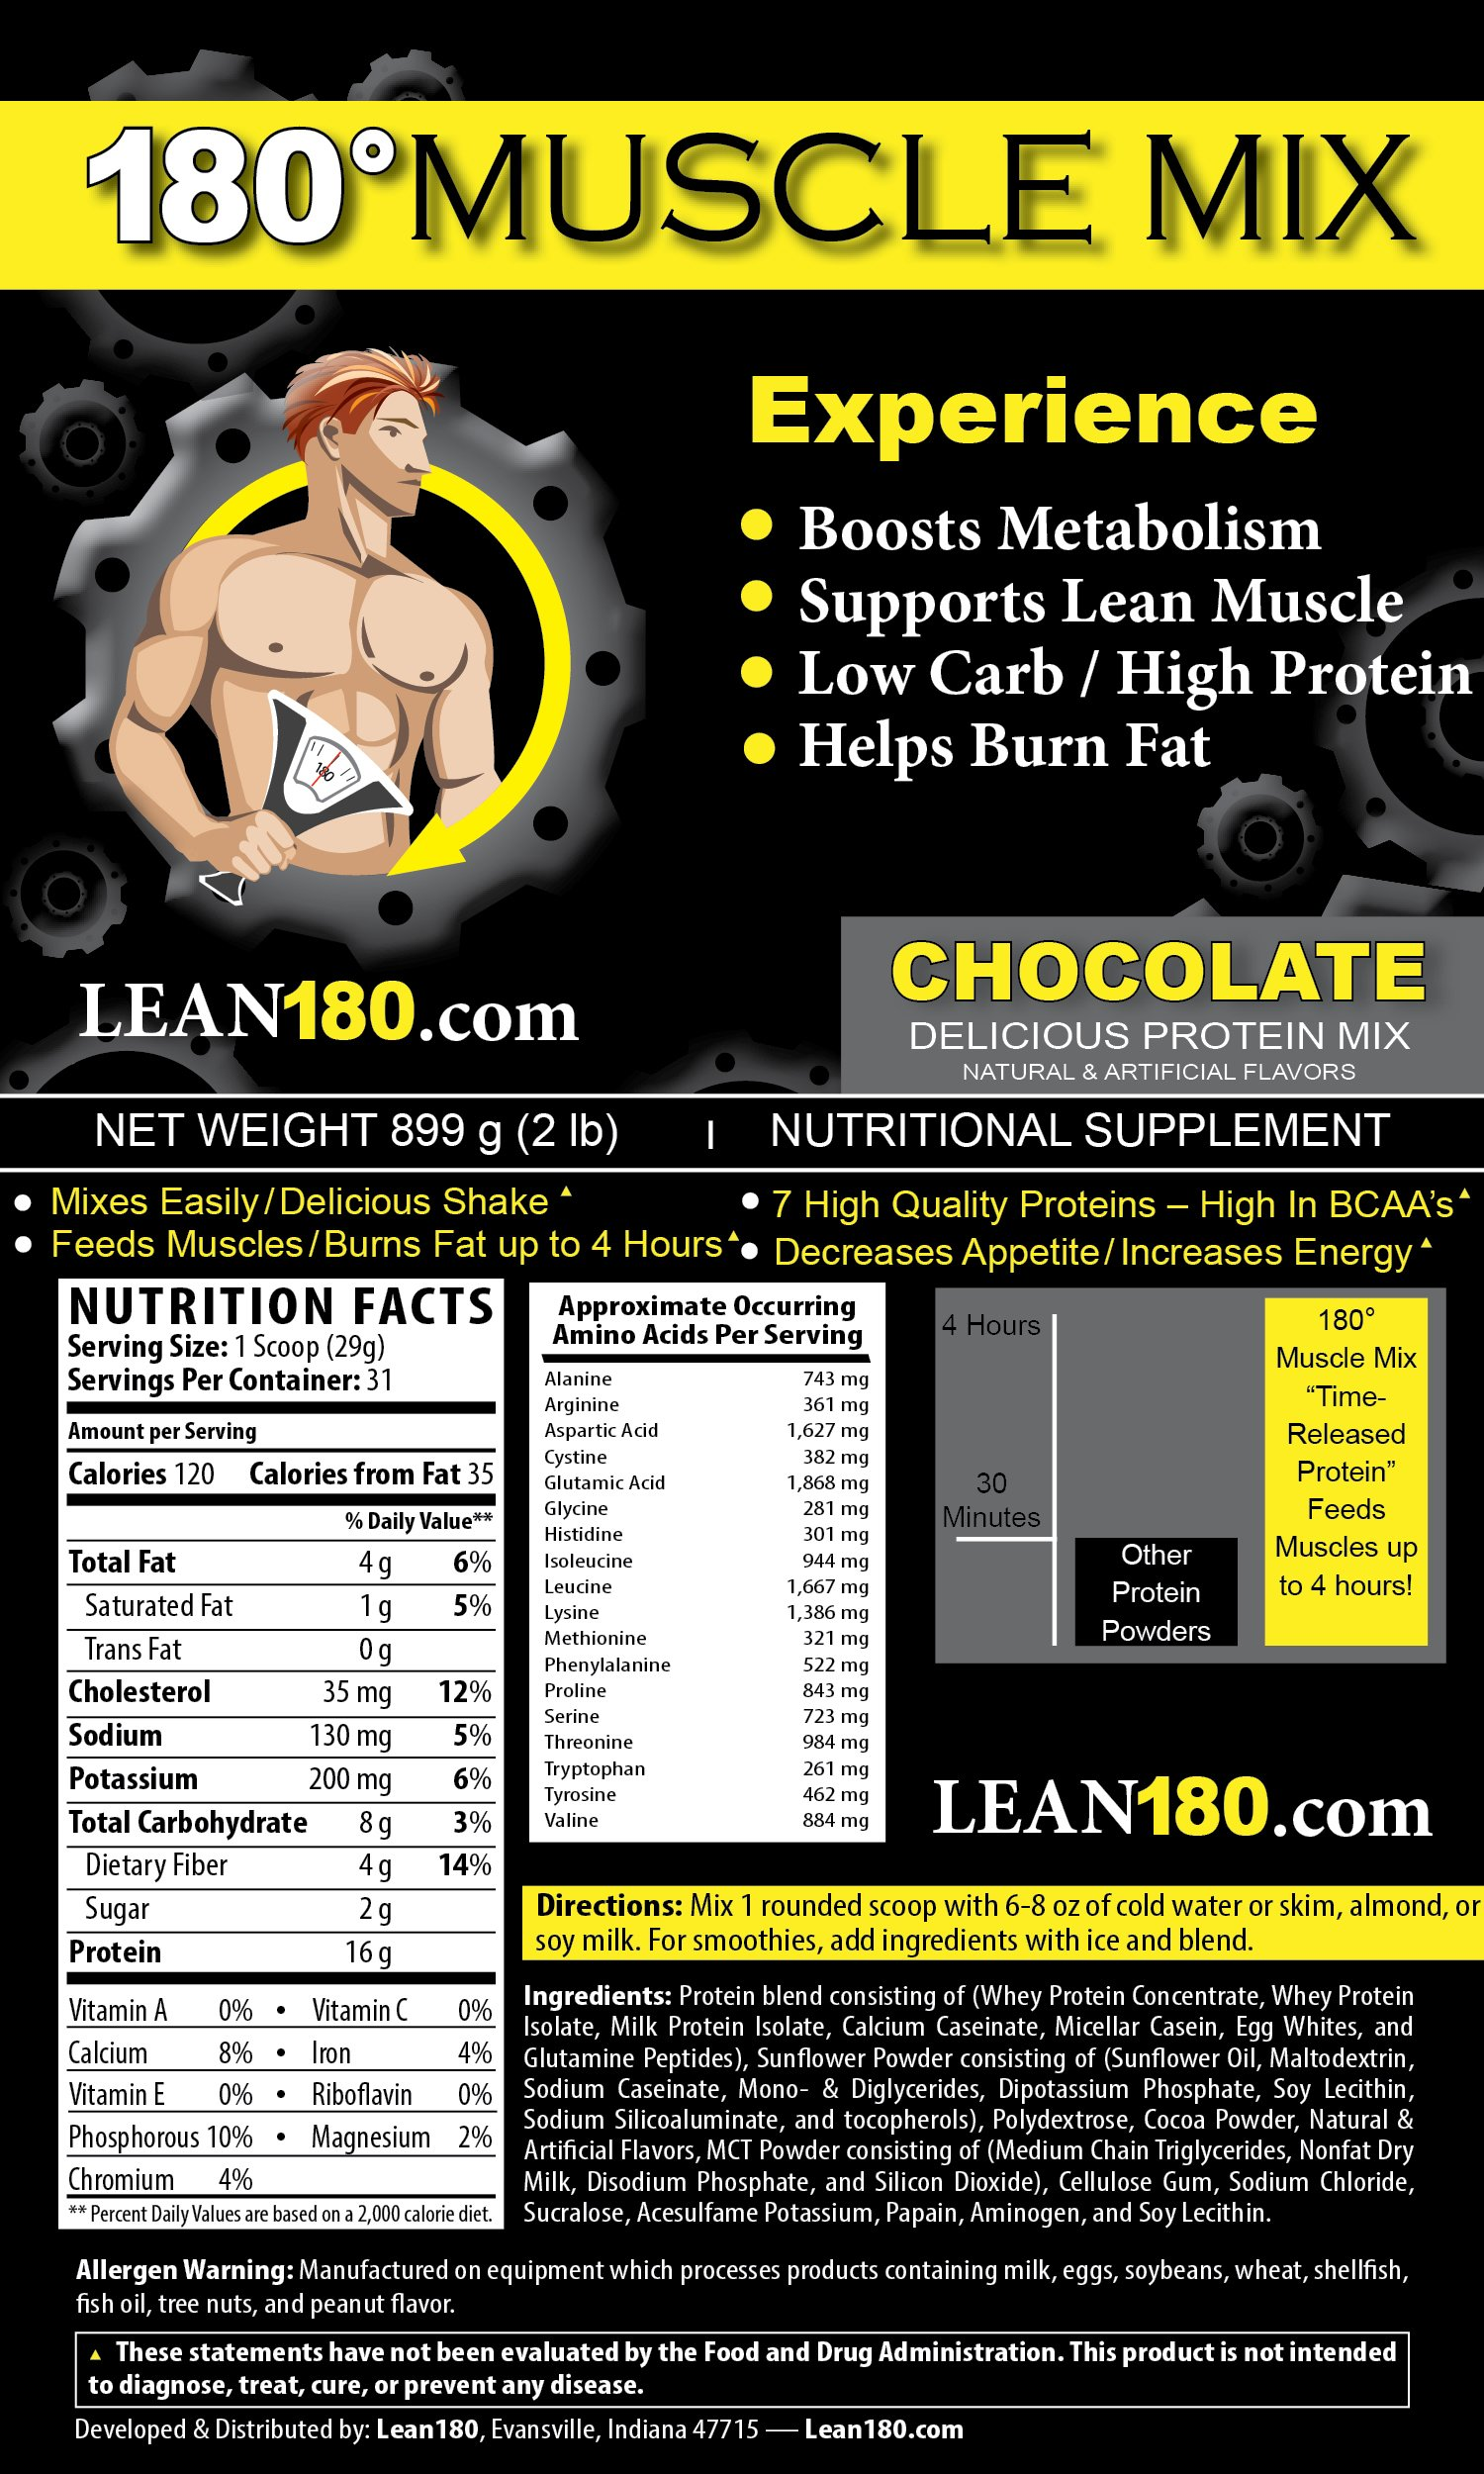 Lean 180 - 30 Day Weight Loss Challenge - Diet Plan to Lose Weight Fast and Get Lean - Lose up to 30 Pounds in Just 30 Days - Everything You Need to Get Lean Fast and Lose Belly Fat (Chocolate, XL) by Lean 180 (Image #2)